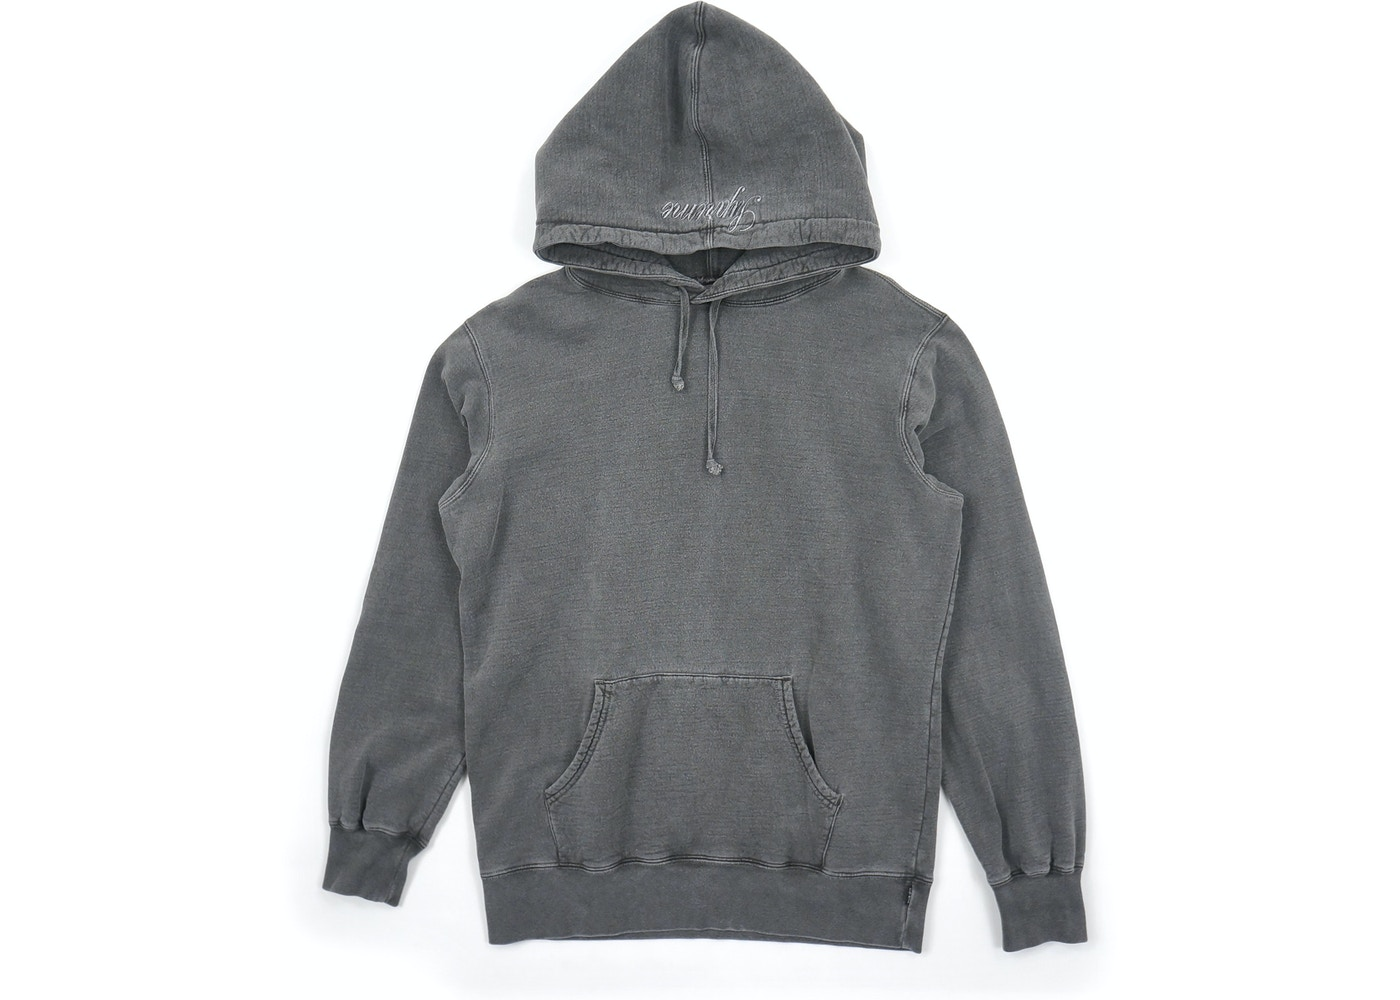 a0f792bf1647 WTB) Supreme Overdyed pullover from FW14 in black. Will consider ...